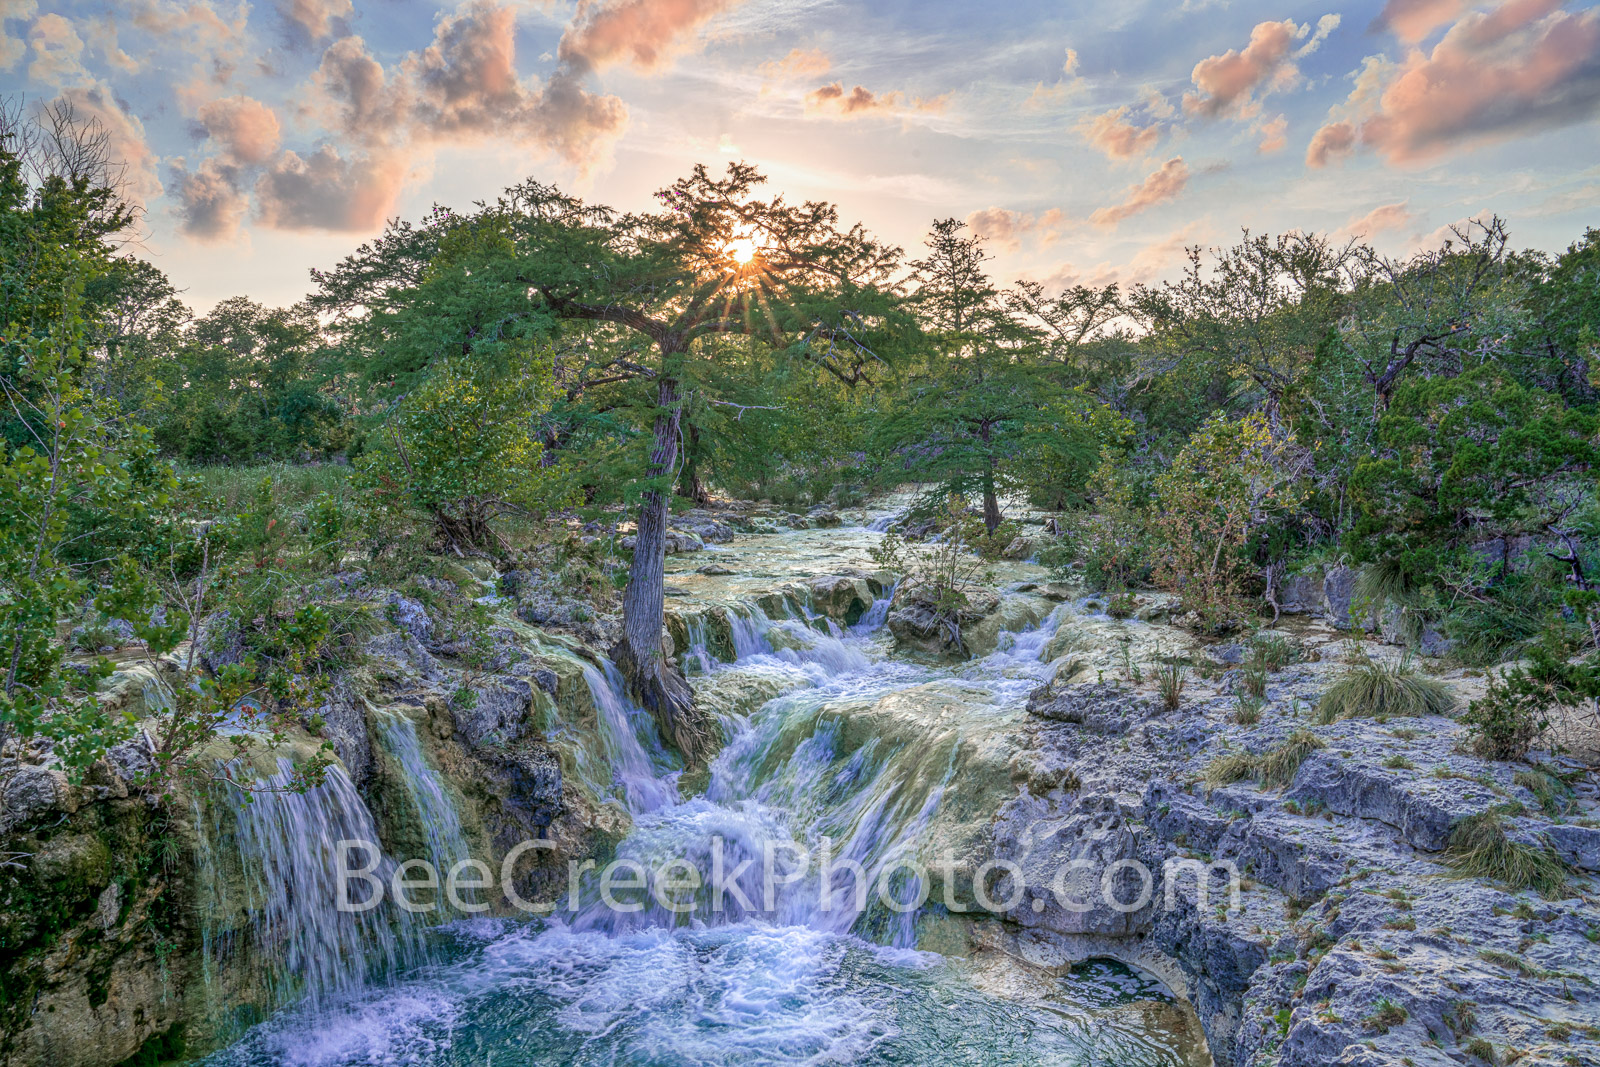 Texas Hill Country Waterfall. waterfall, falls, rocky, limestone, outcrop, hill coutry, landscape, rains, water, waterscape, blue green, aqua, spring, picture of waterfalls, texas hill country, hill c